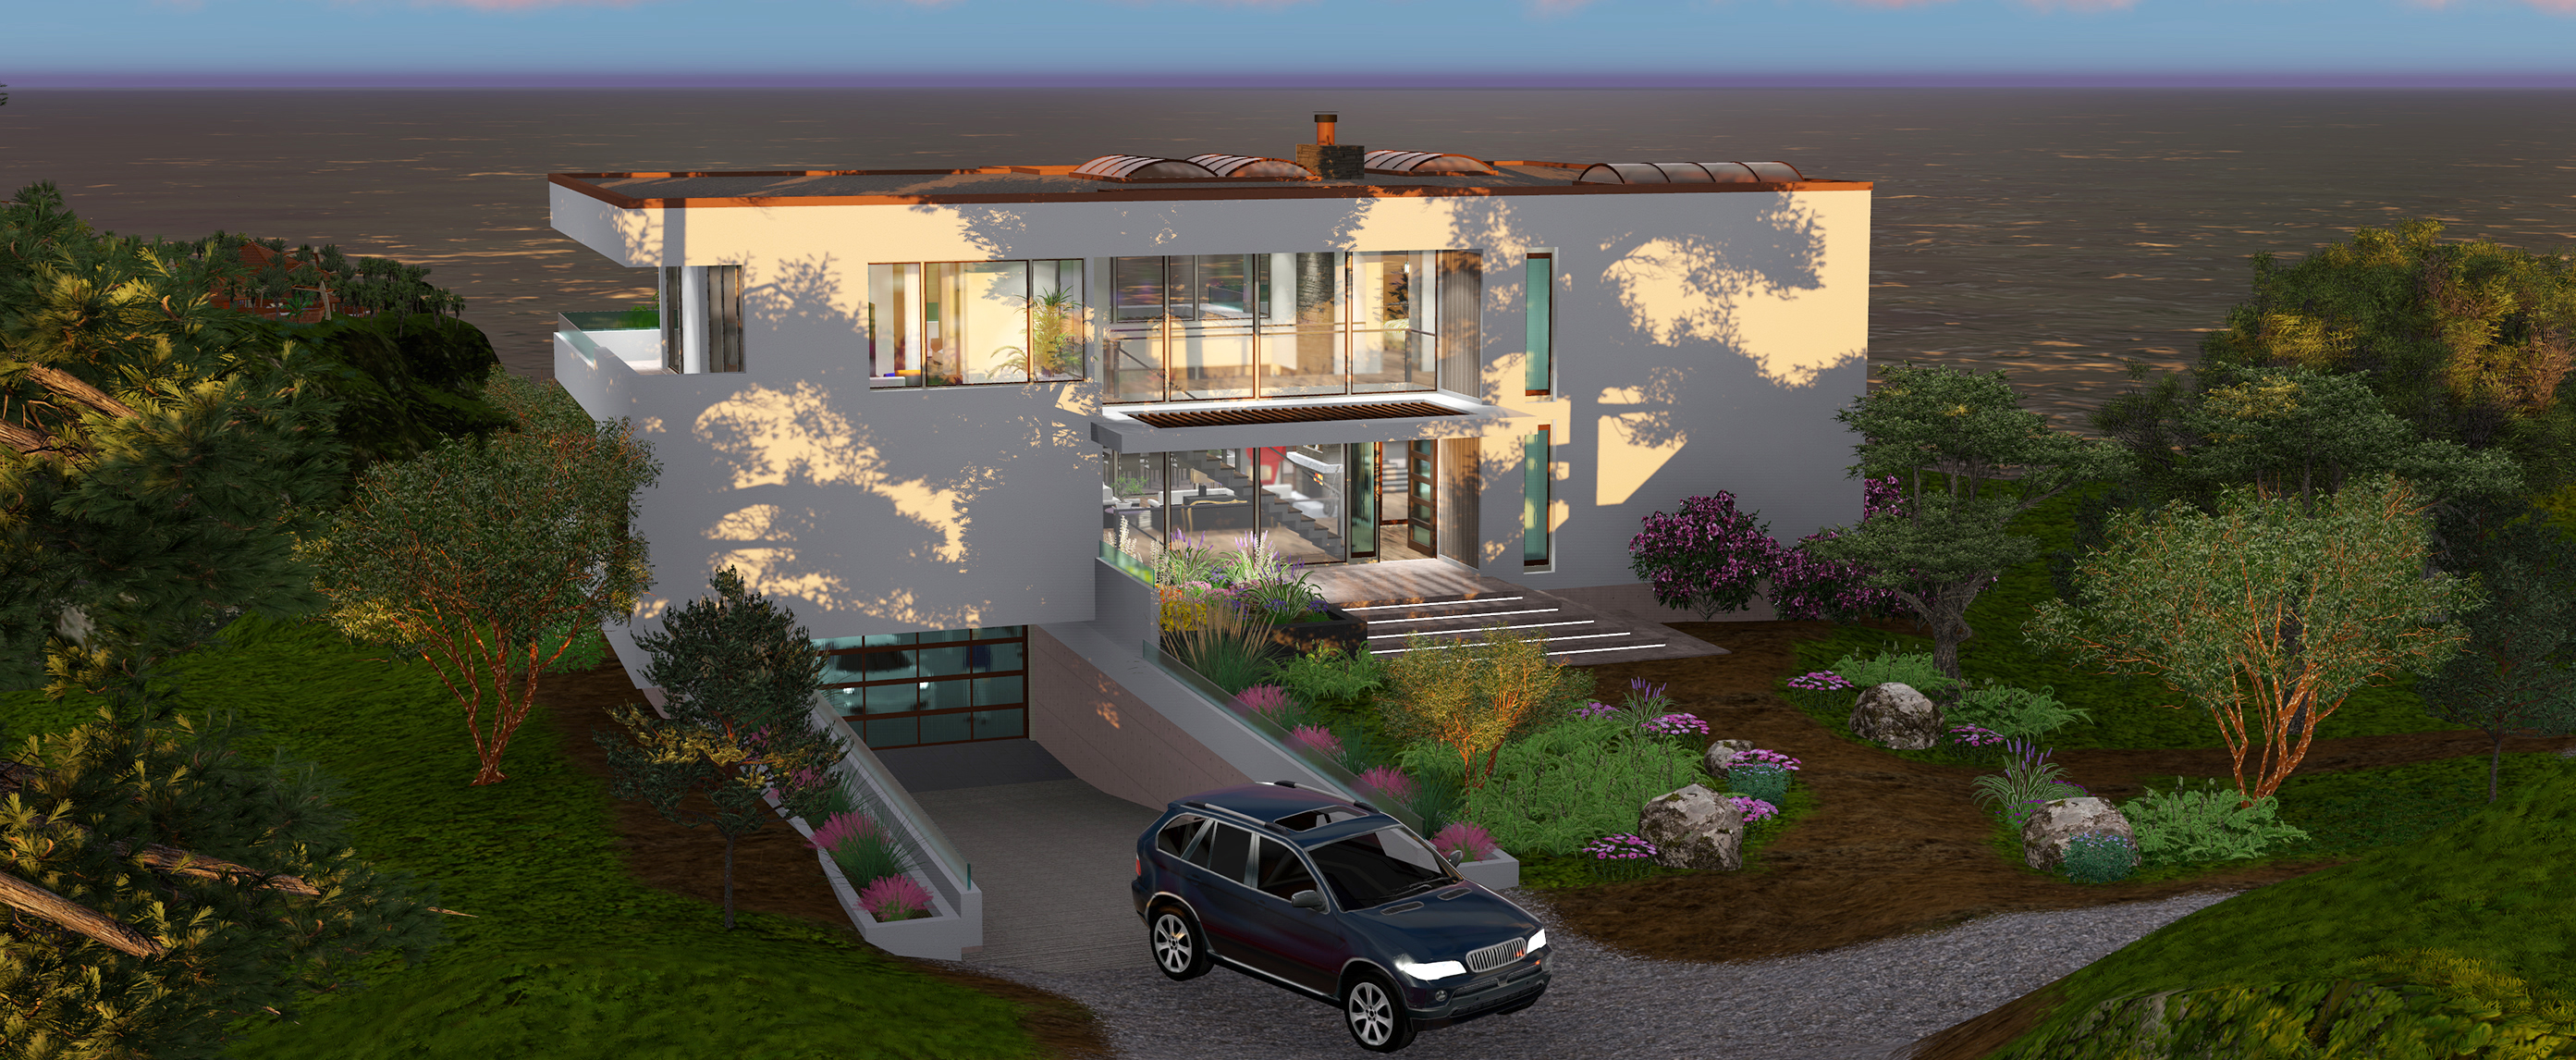 Buy our 3 level beverly hills dream house 3d floor plan for 3 level homes